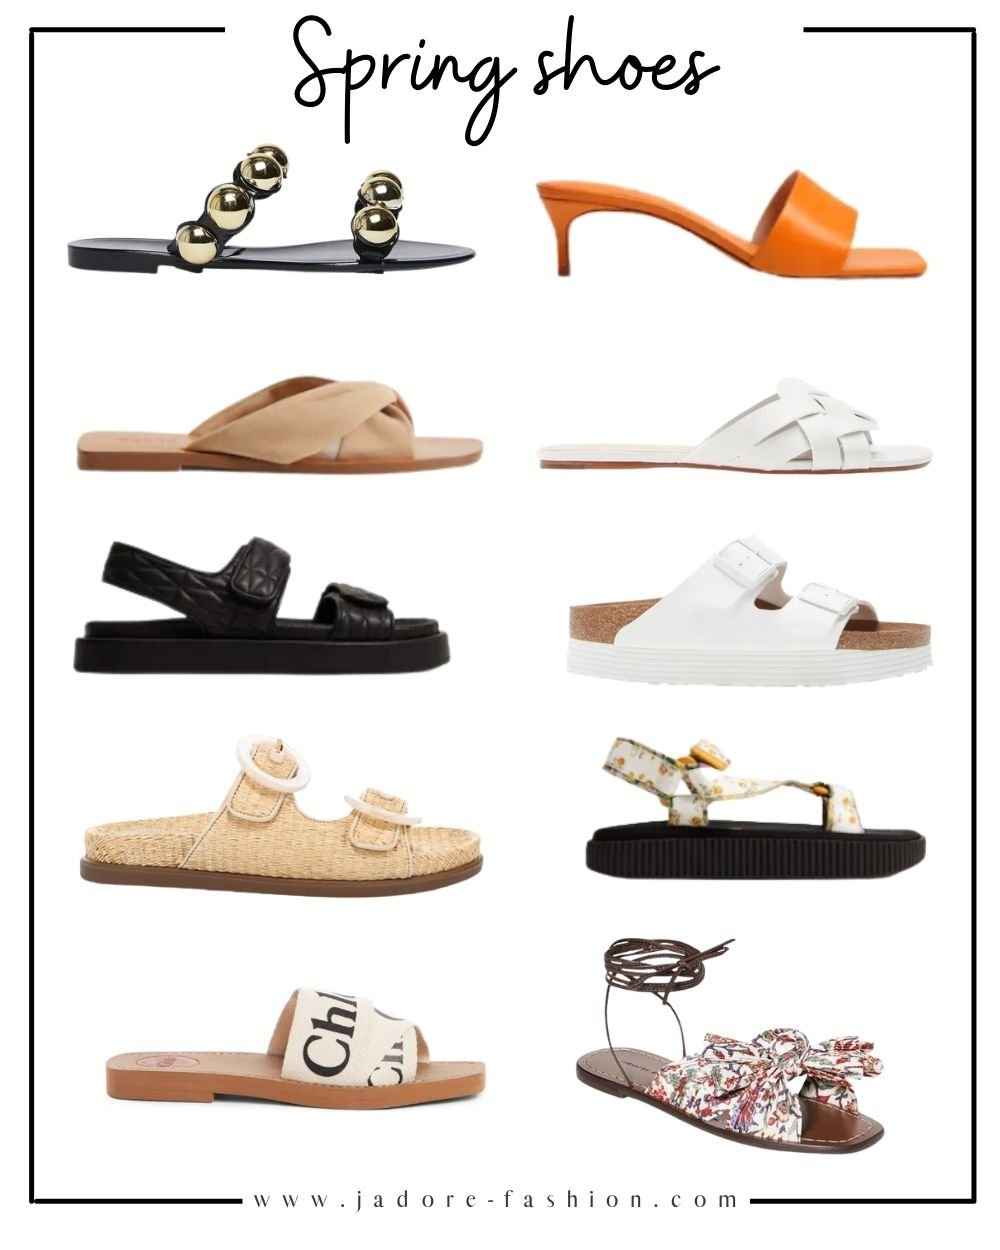 Stella-adewunmi-of-jadore-fashion-blog-share-the-best-spring-shoes-and-kids-clothes